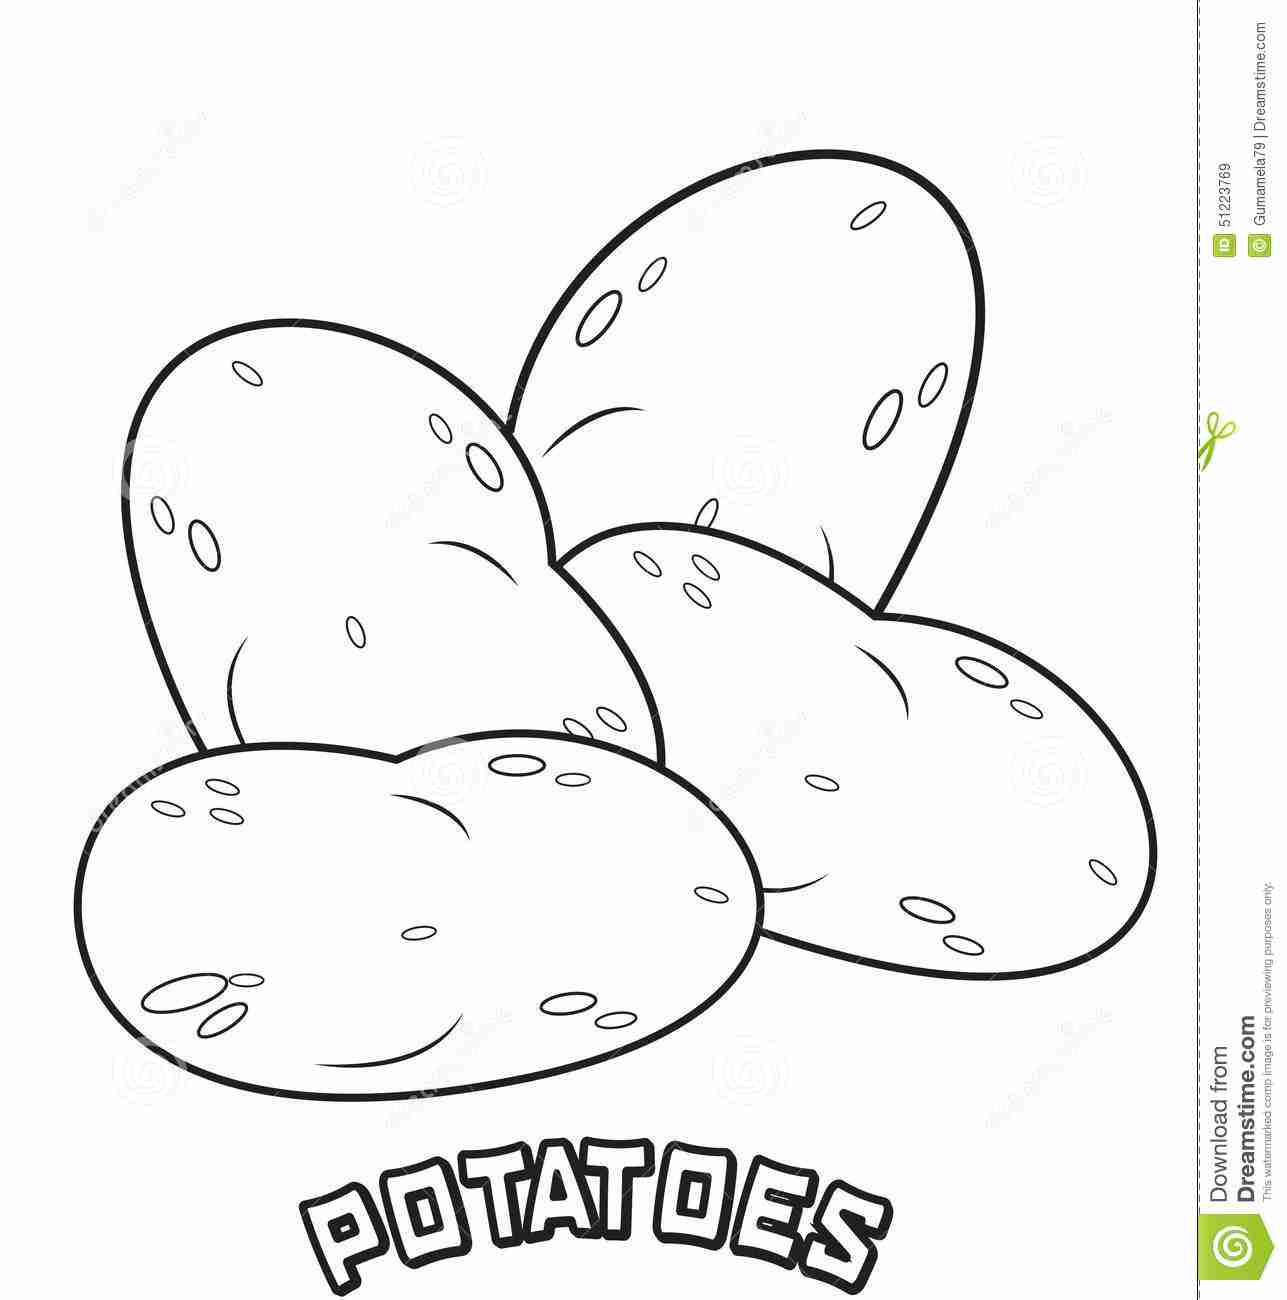 Potato Coloring Page At Getcolorings